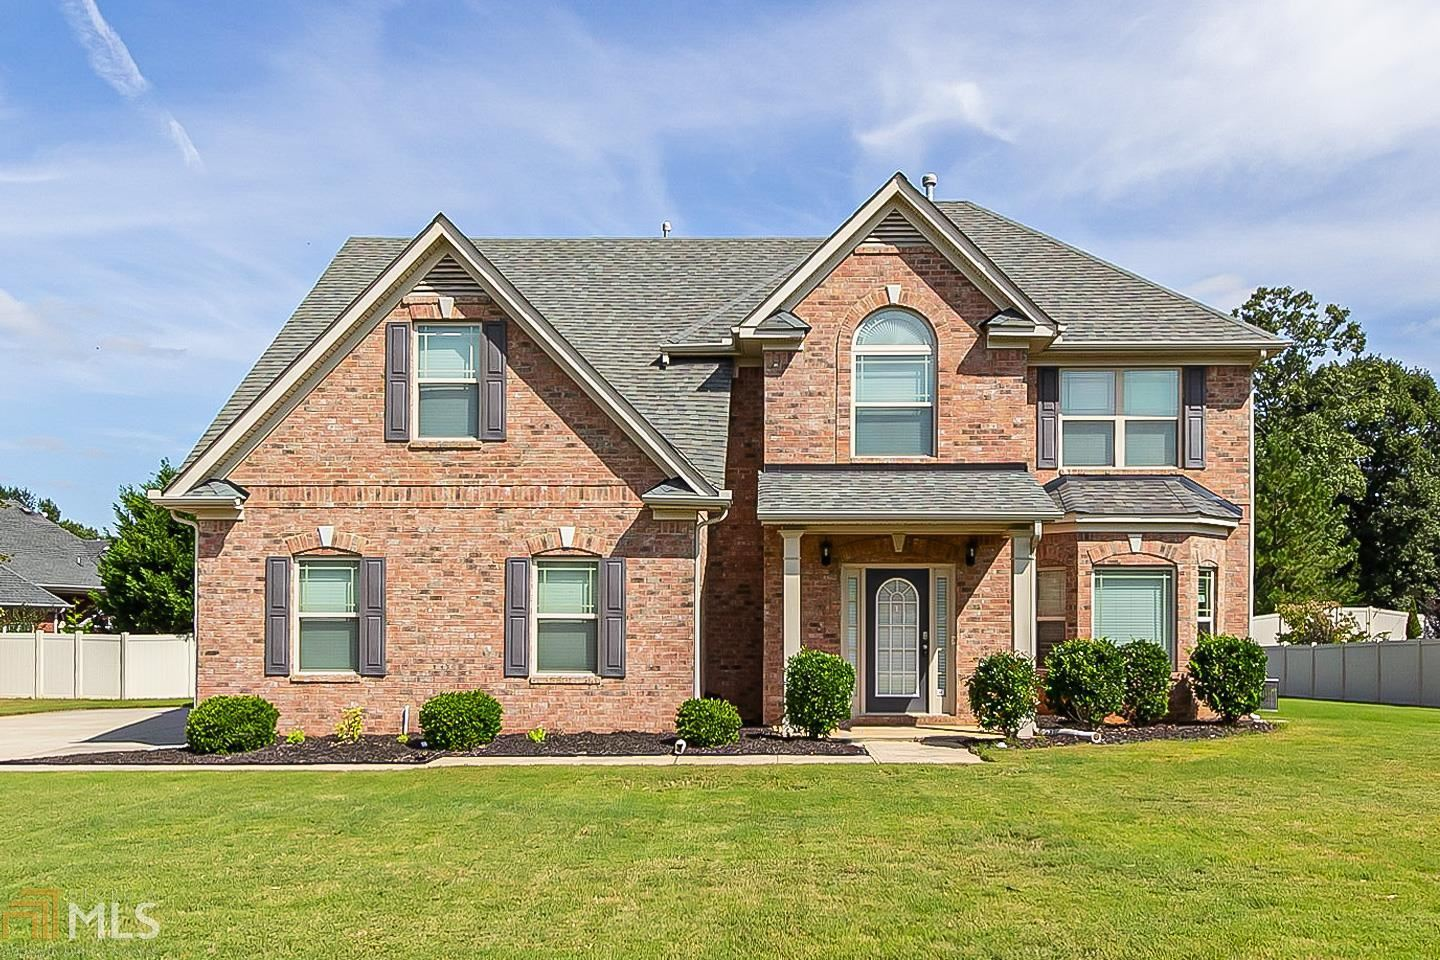 405 Lilywood, McDonough, GA 30253 - MLS#: 8861541